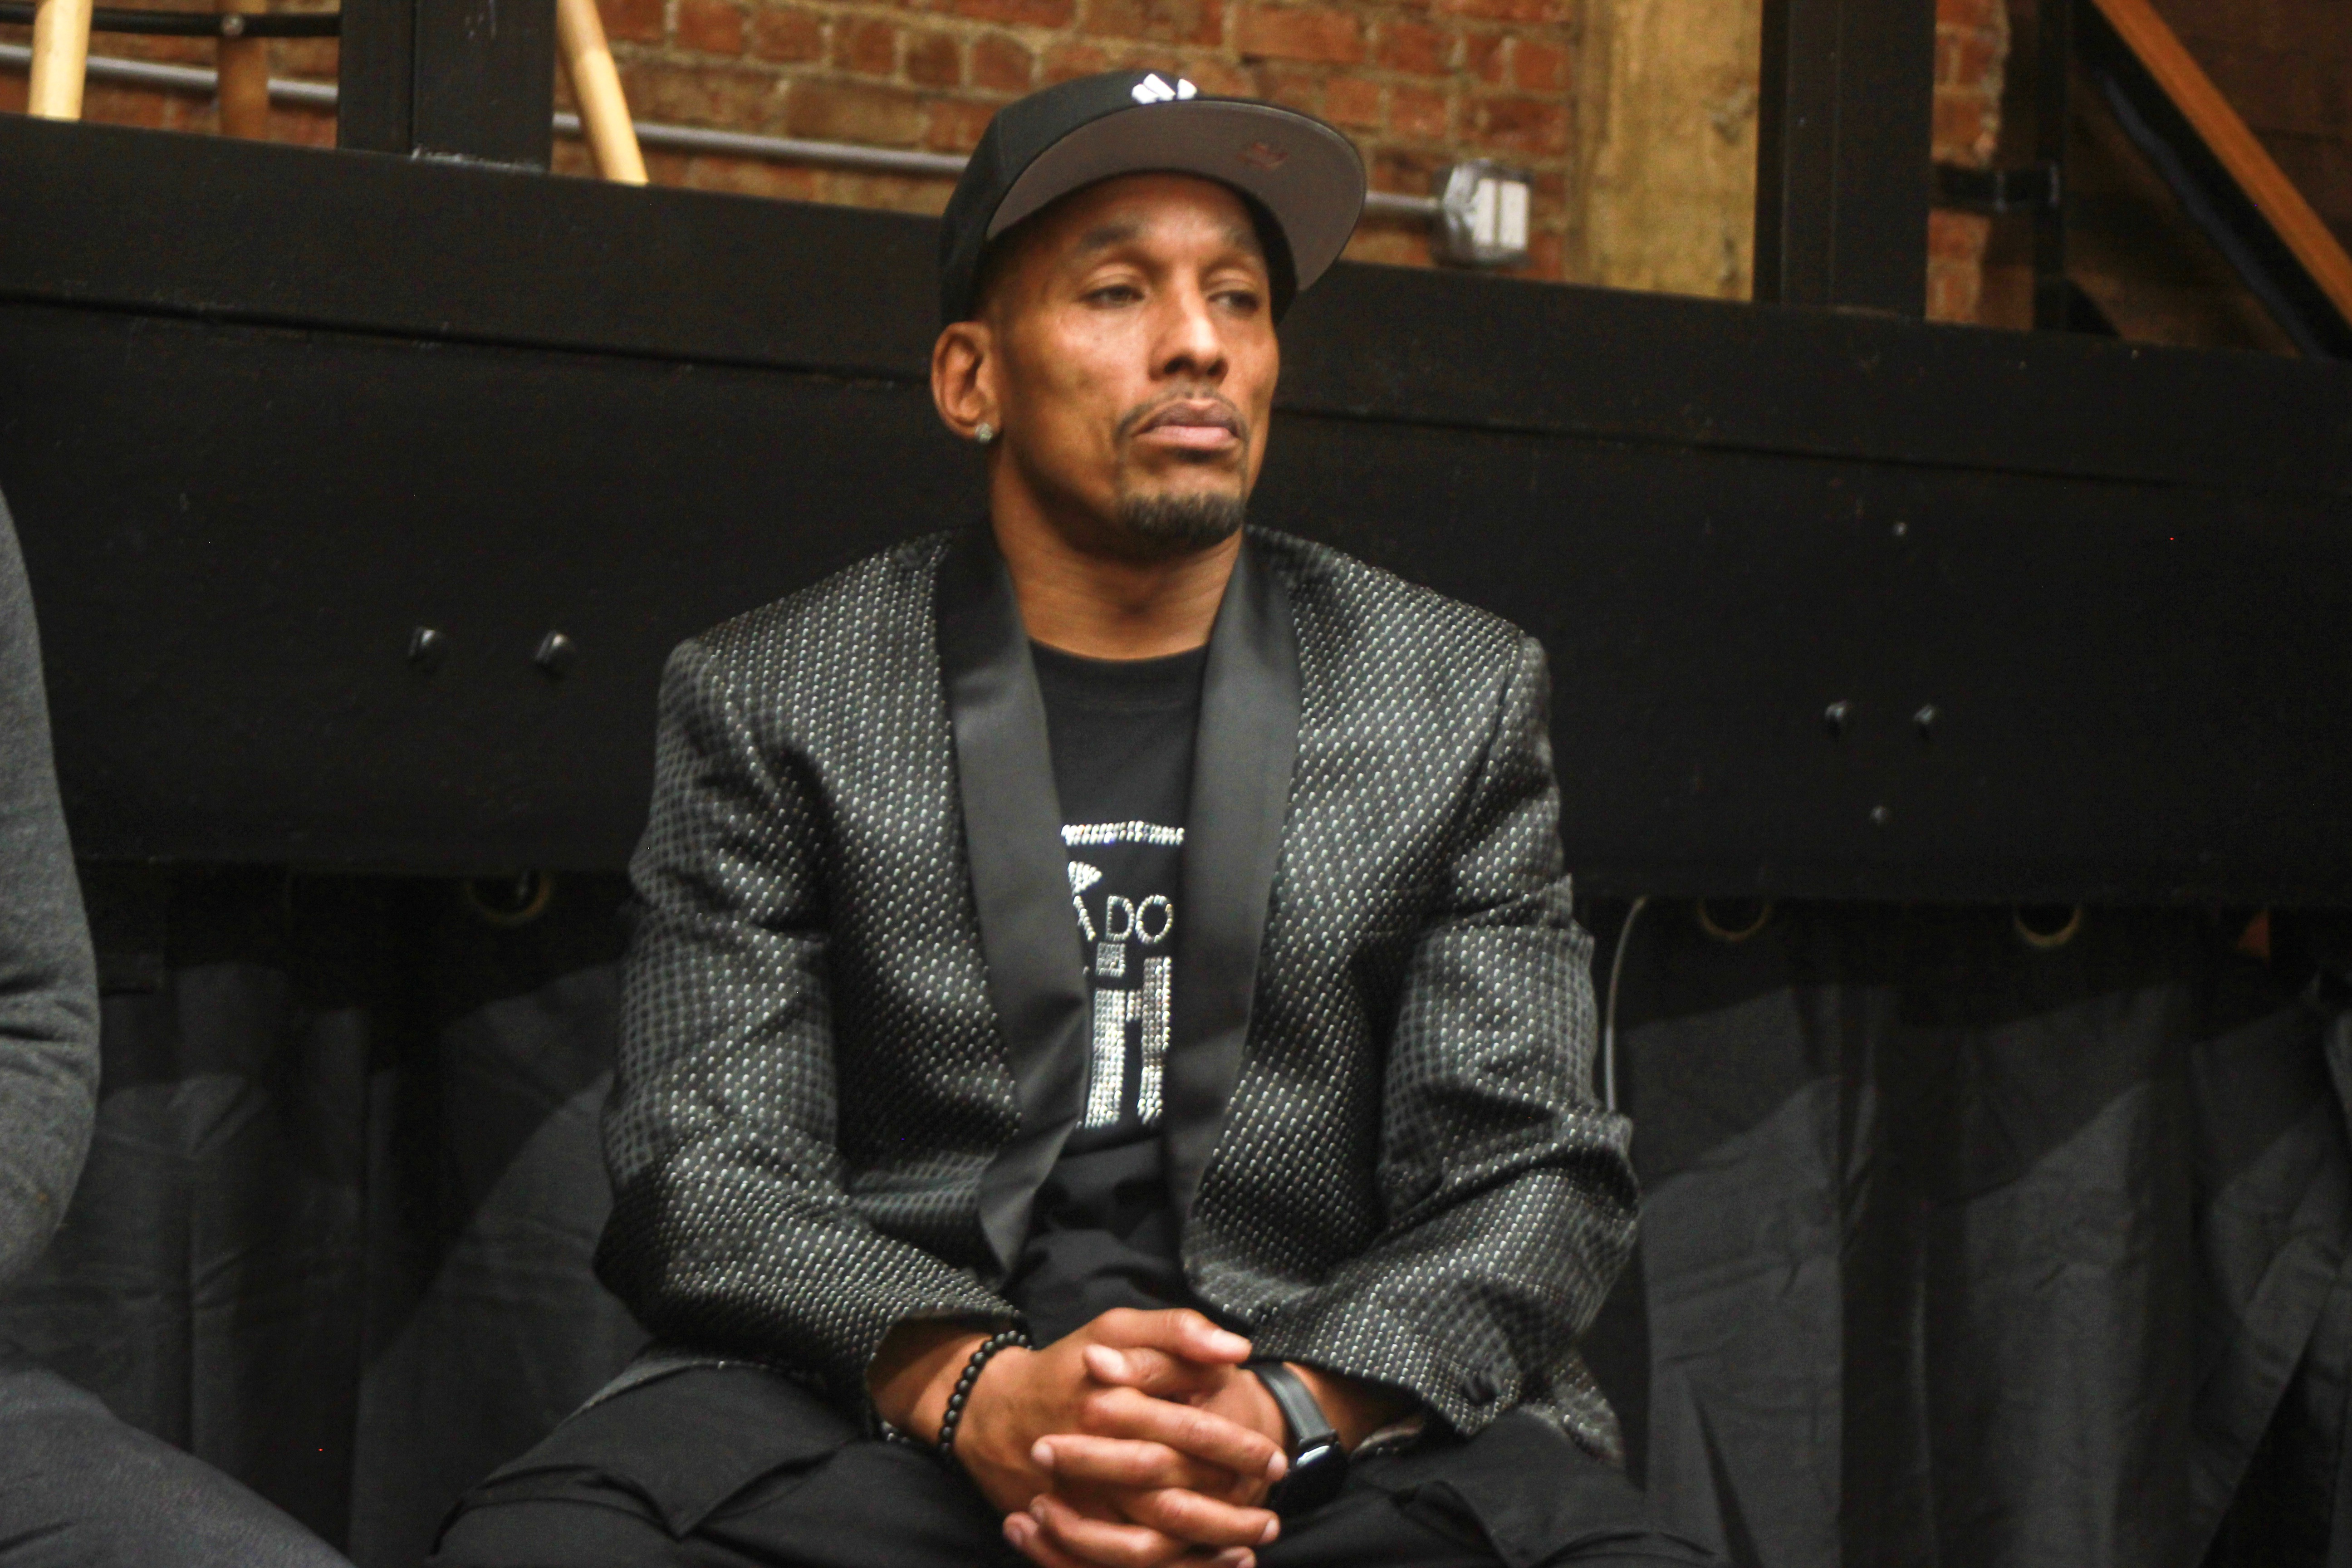 Korey Wise is Working on his Own Clothing Line